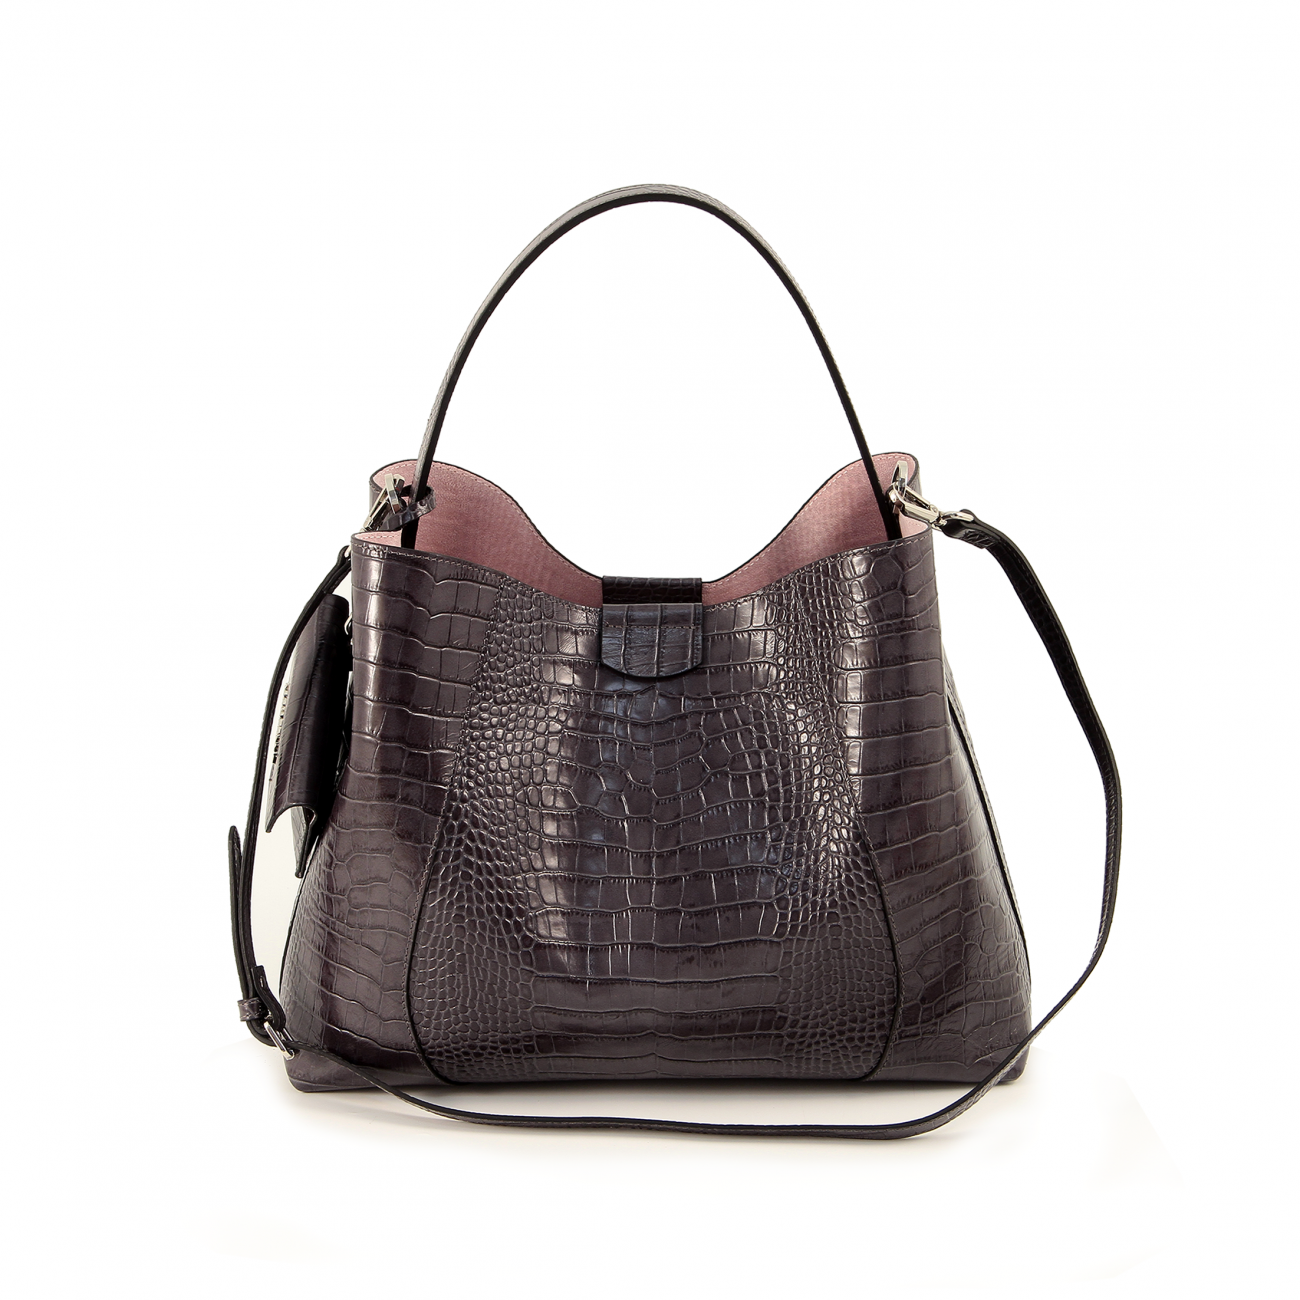 884ba95838 Genuine leather bag. Nickel colored metal accessories. Handle height 22 cm.  Adjustable and detachable shoulder strap. Top closure with magnet.